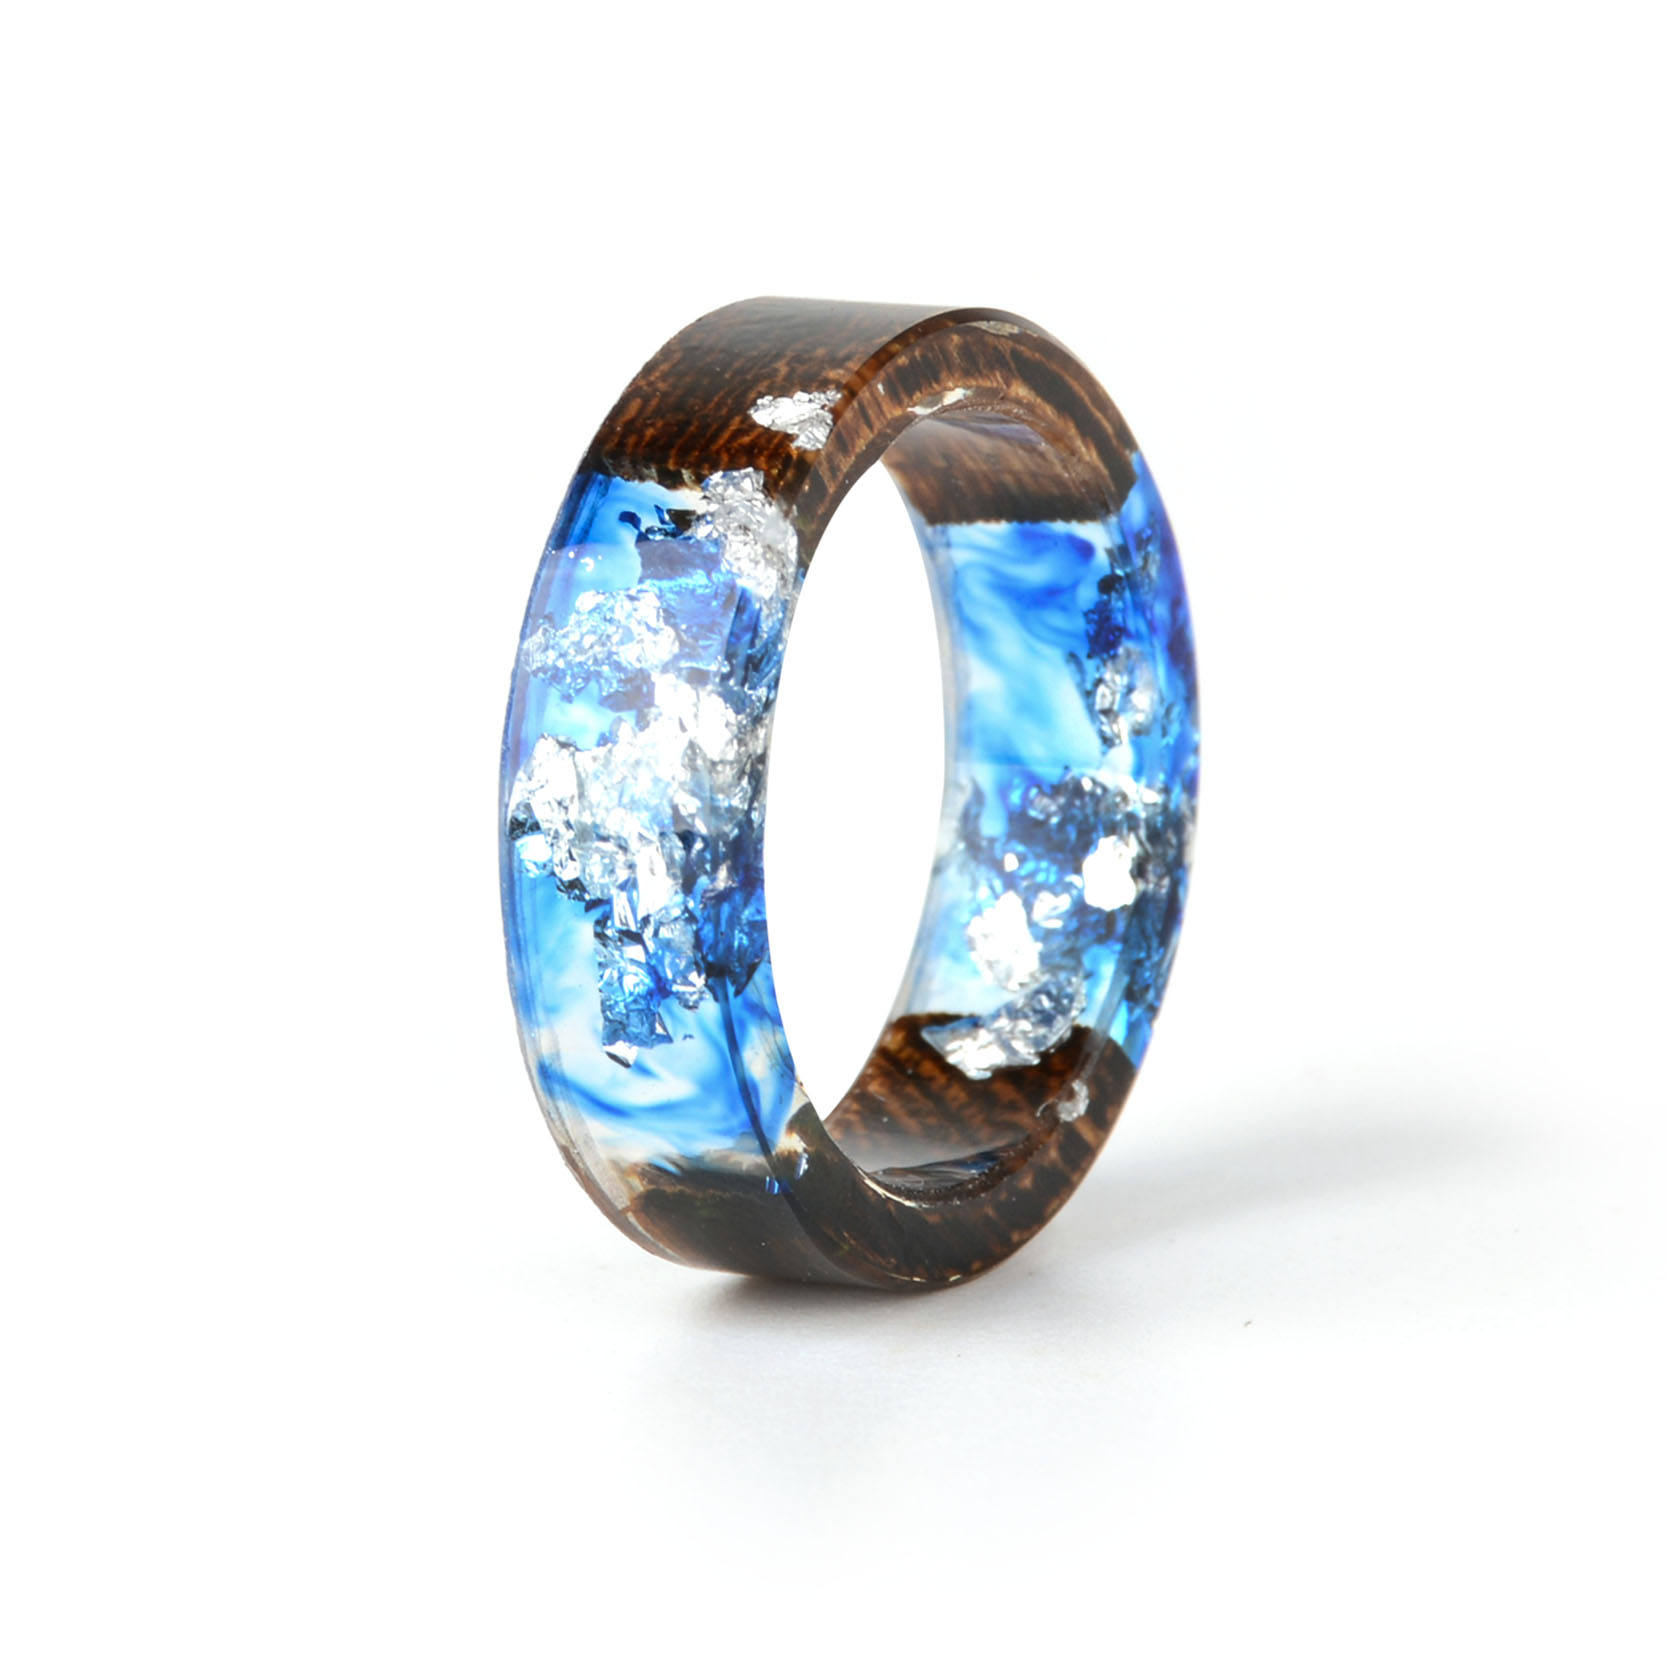 2019 Hot Sale Handmade Wood Dried Flowers Plants Inside Jewelry Resin Transparent Anniversary Ring for Women